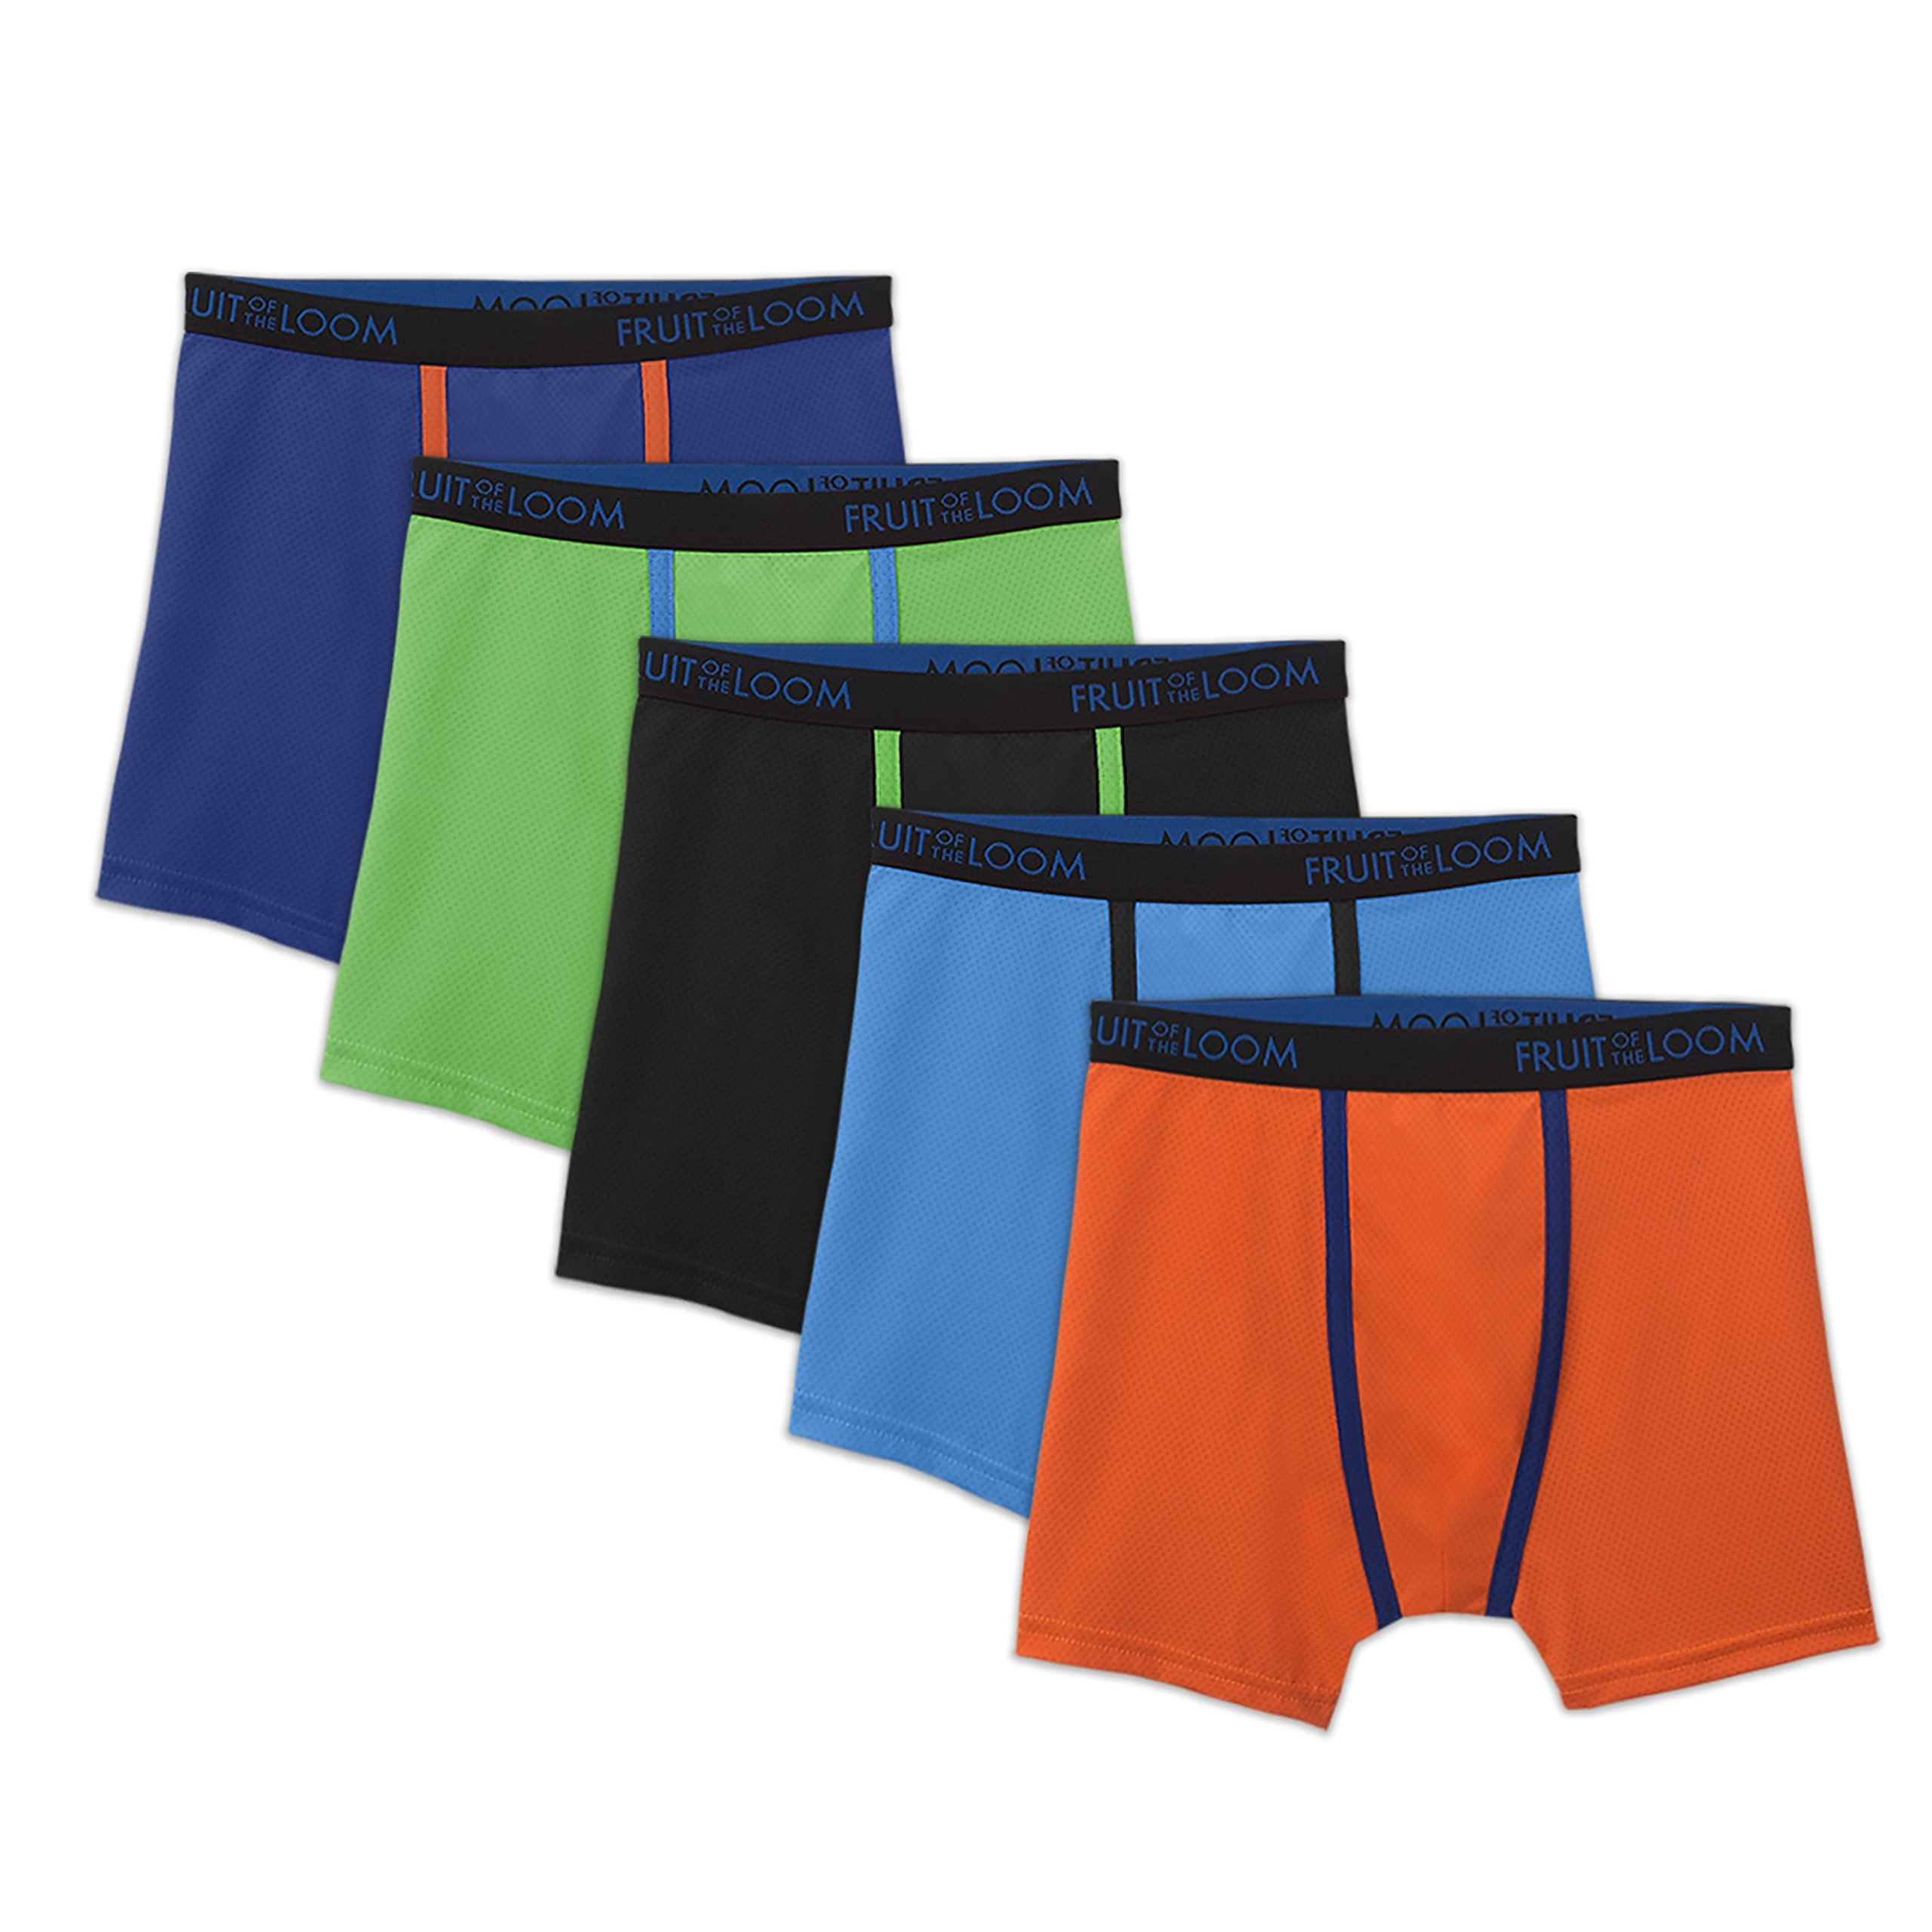 Fruit of the Loom Big Boys' 5 Pack Breathable Boxer Brief, Micro/Mesh Assorted, X-Large by Fruit of the Loom